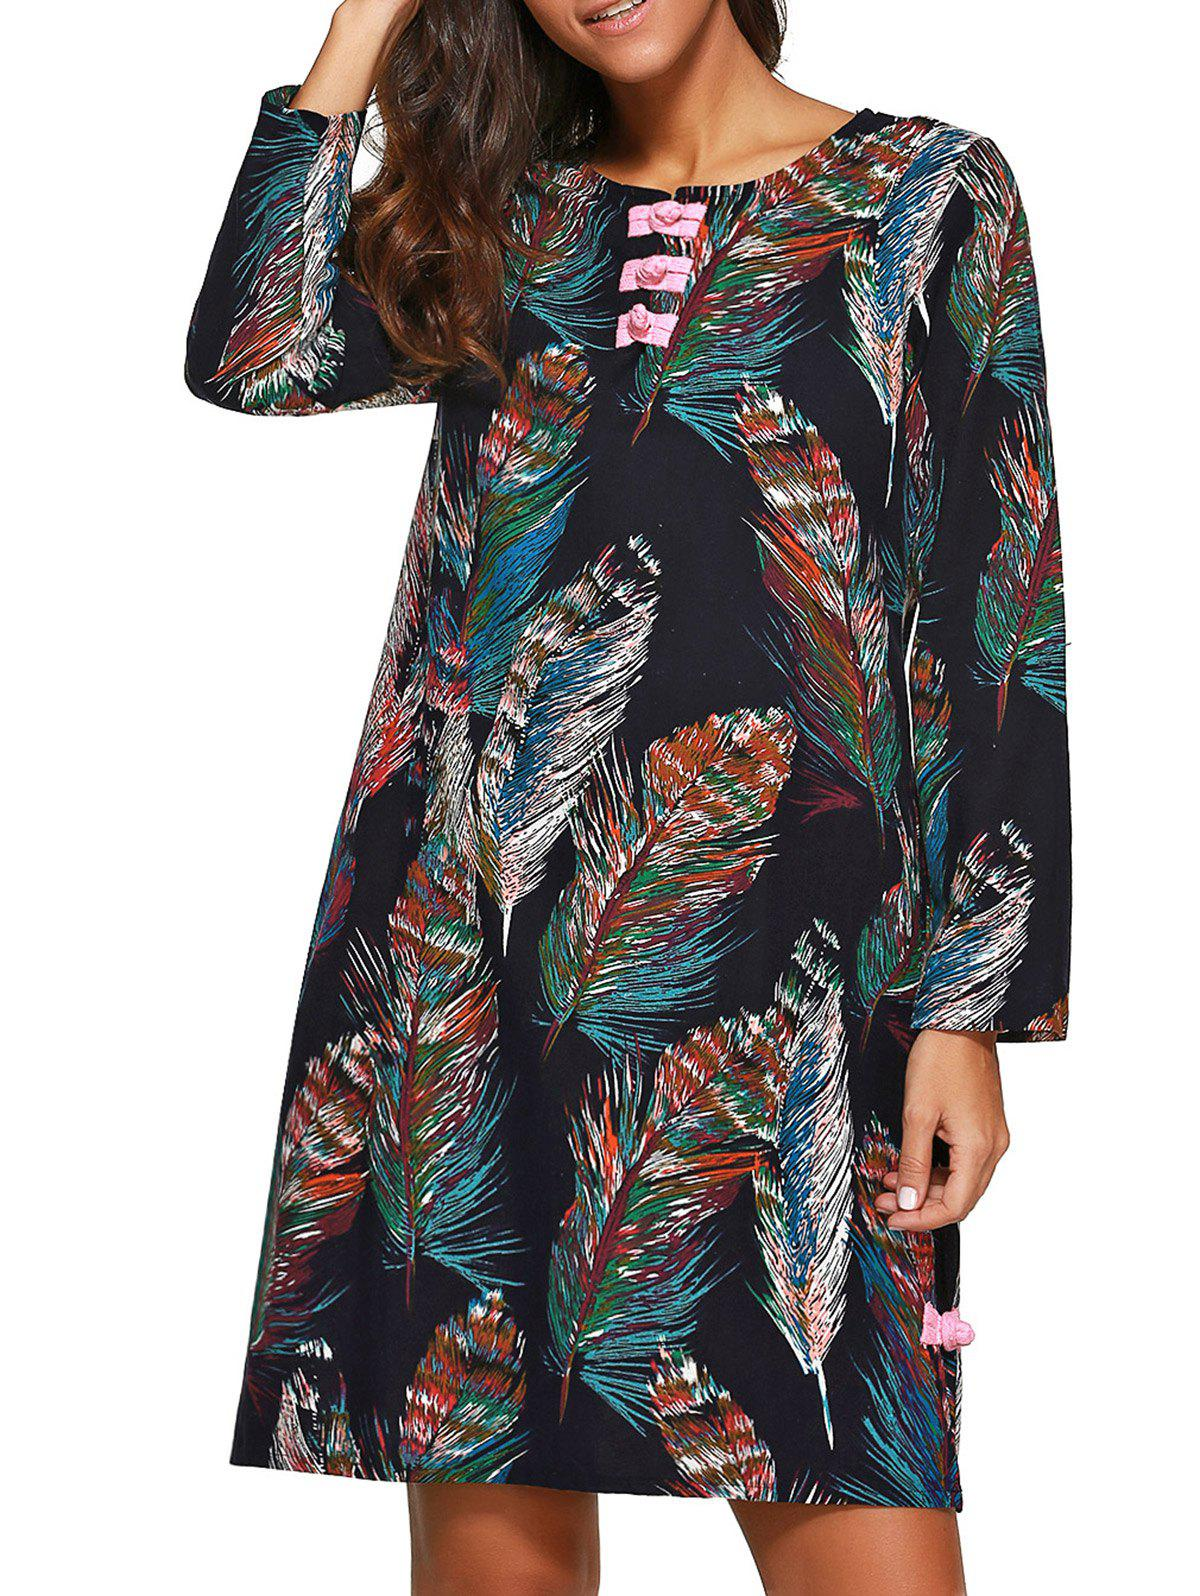 Feather Print Long Sleeves Shift Dress inc new white black women s large l feather print seamed shift dress $79 013